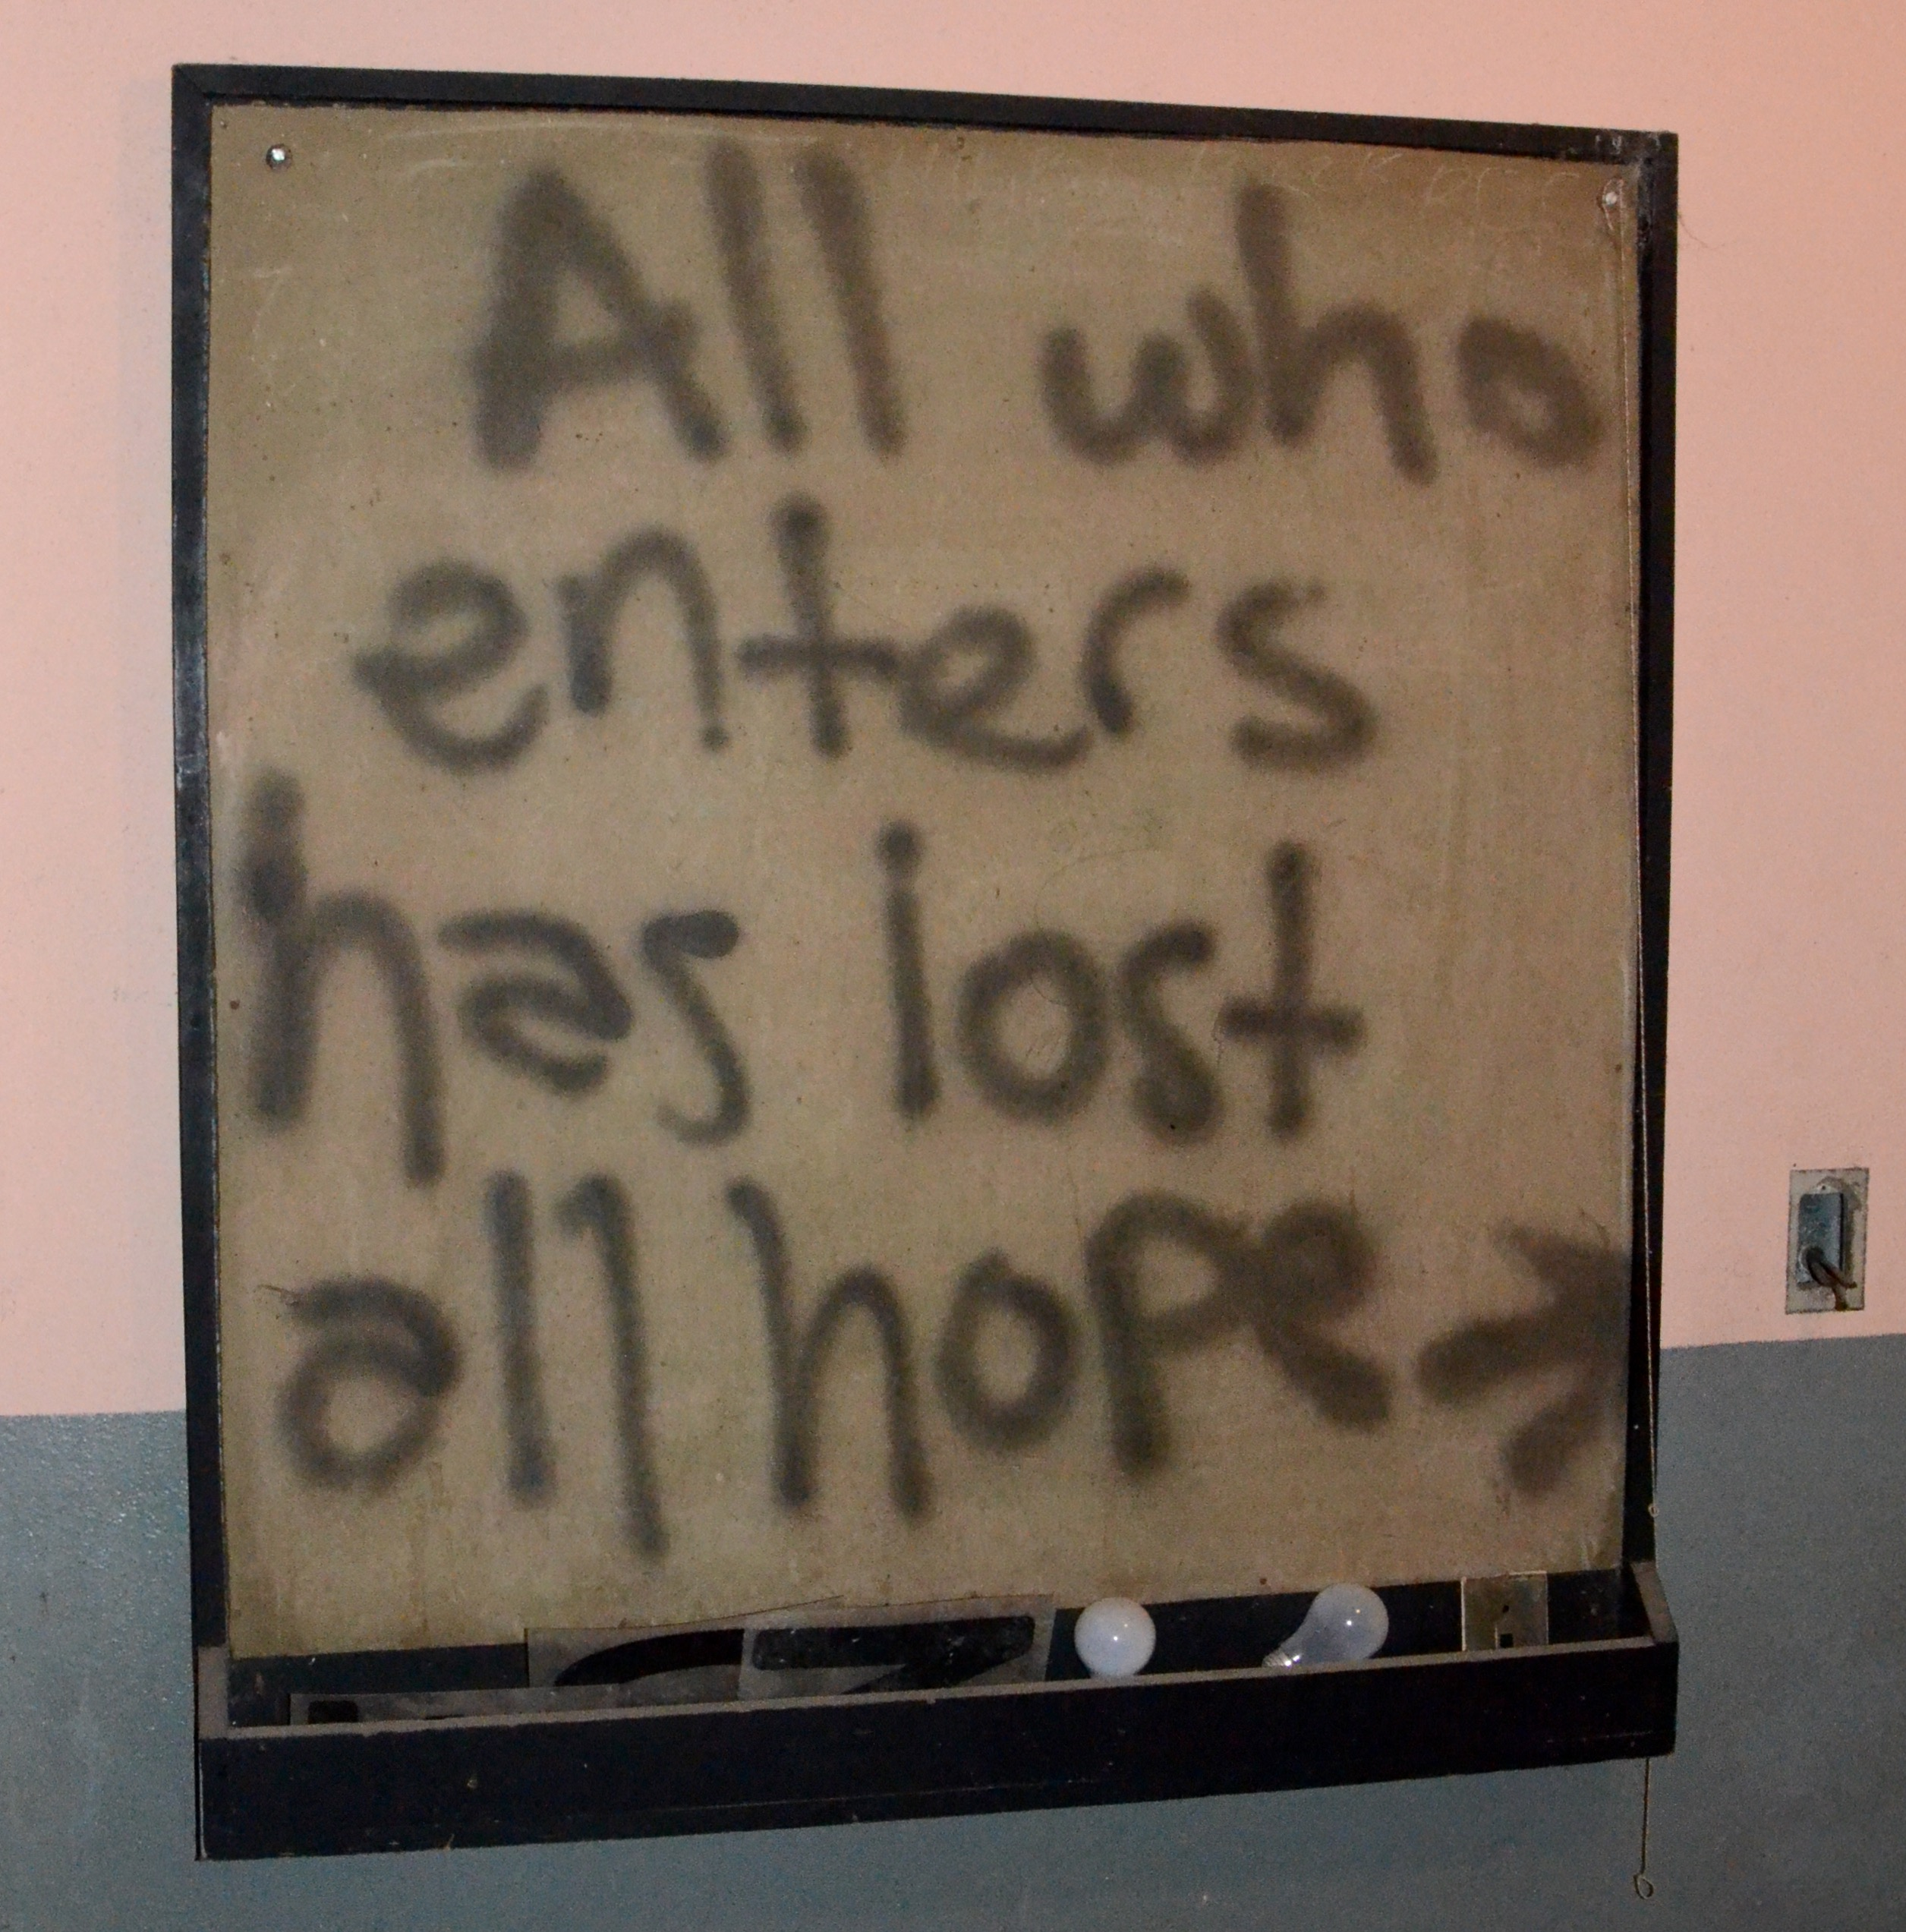 graffiti: All who enters has lost all hope.